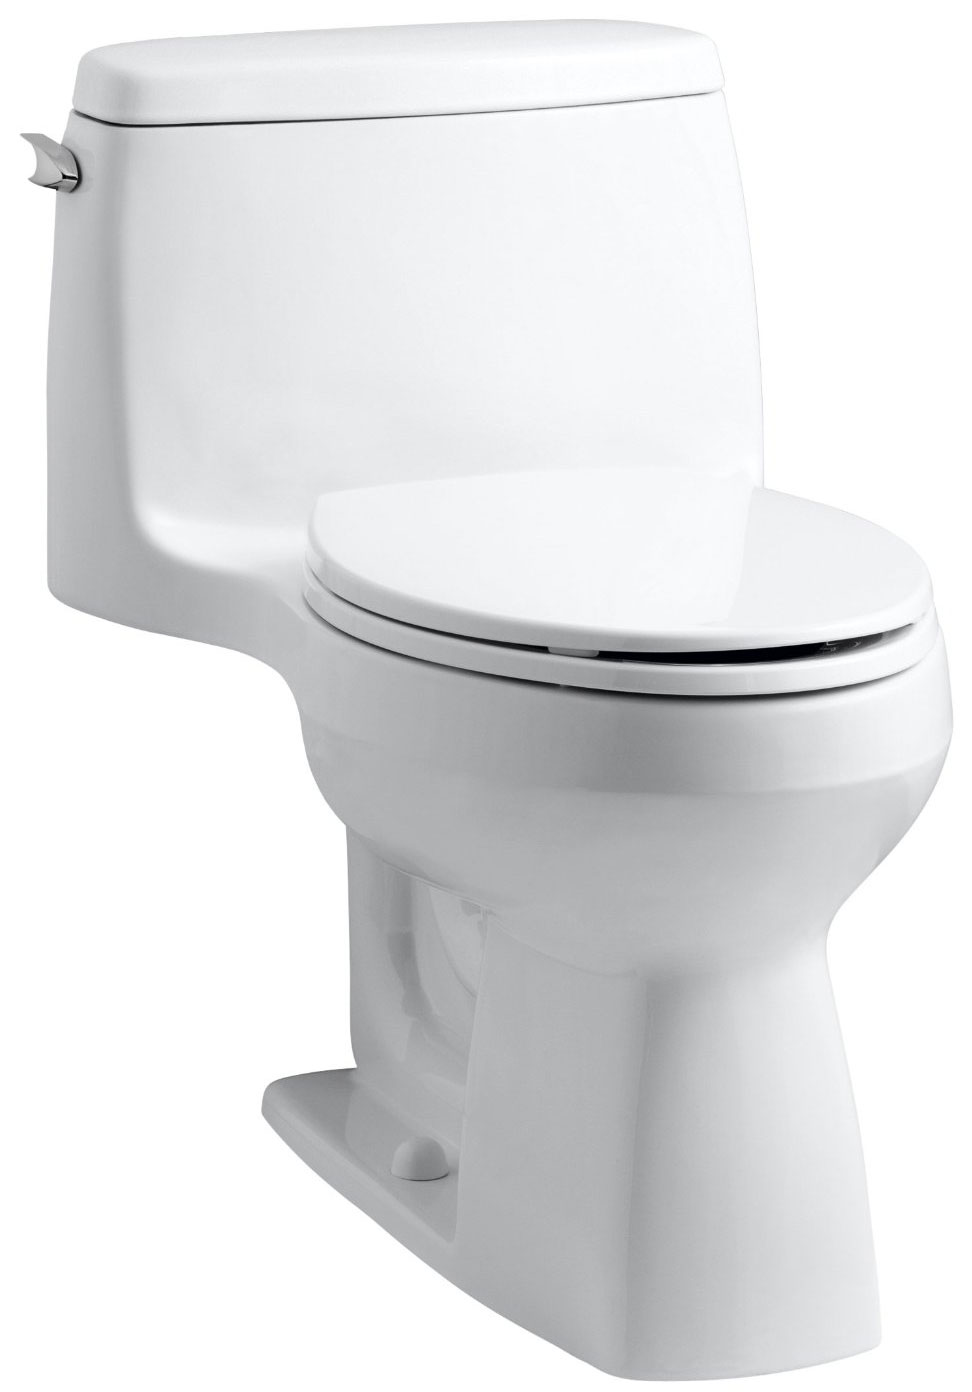 Kohler Santa Rosa >> KOHLER 3810-96 Santa Rosa Comfort Height Elongated 1.28 GPF Toilet with AquaPiston Flush ...